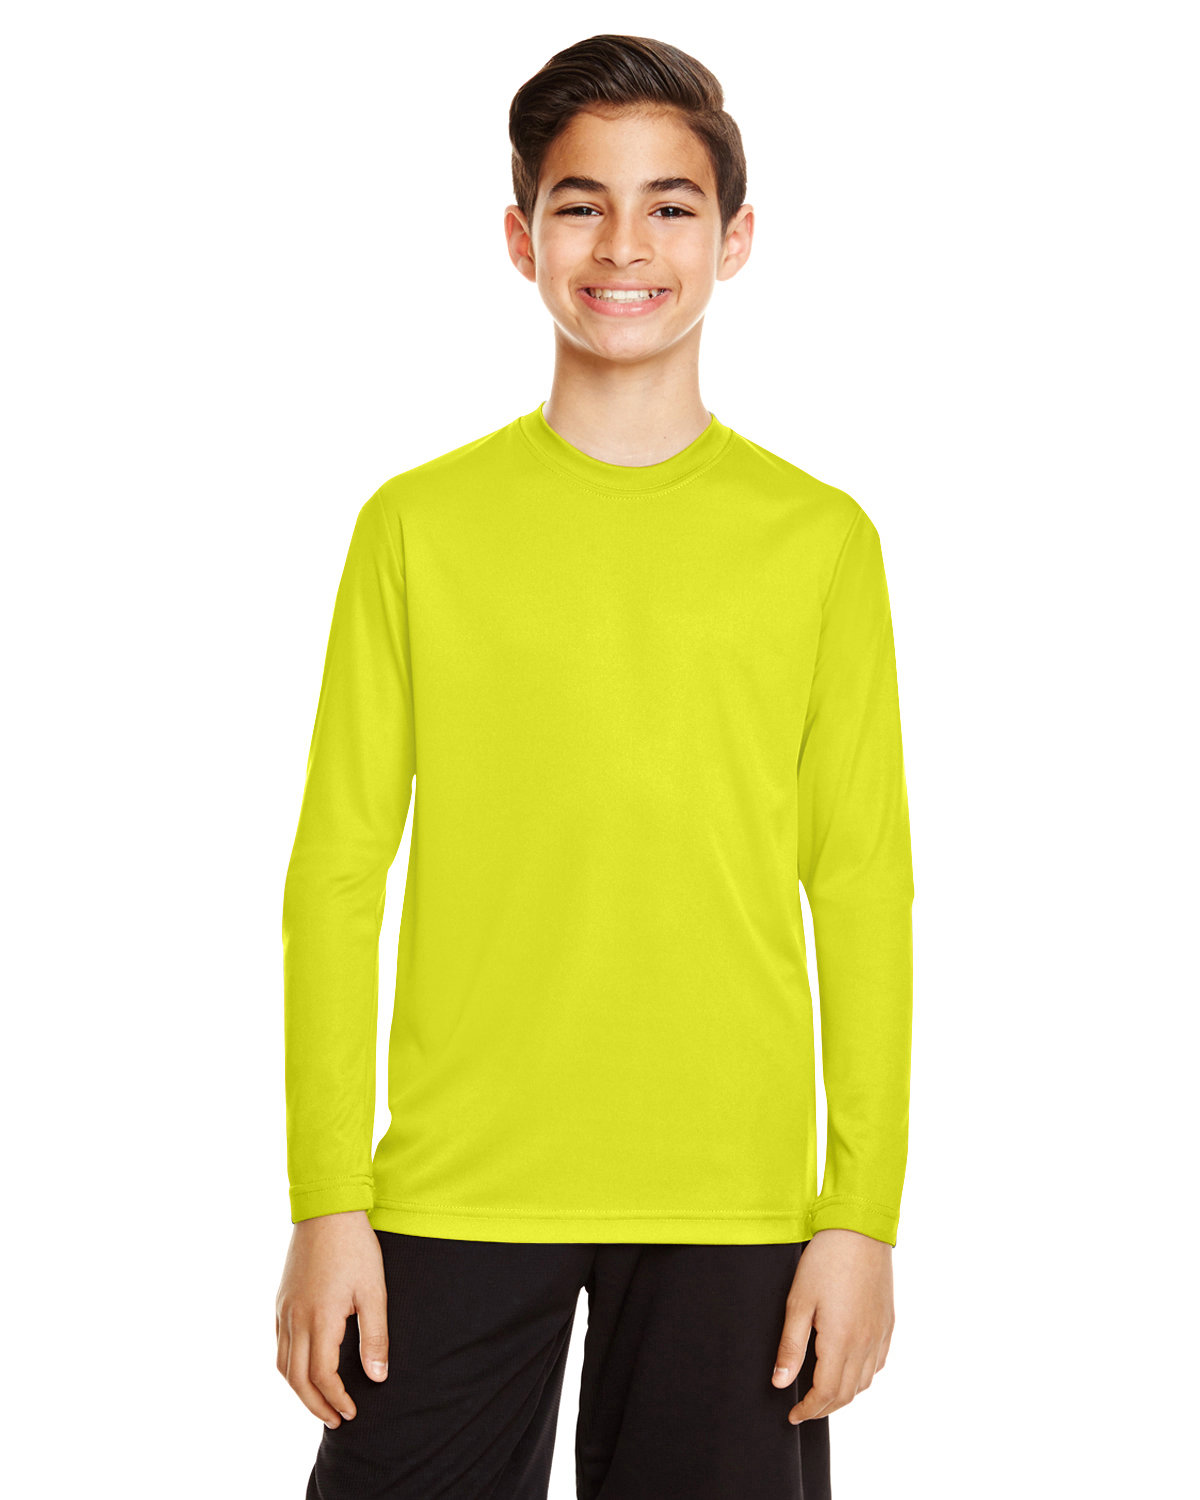 Team 365 Youth Zone Performance Long-Sleeve T-Shirt SAFETY YELLOW